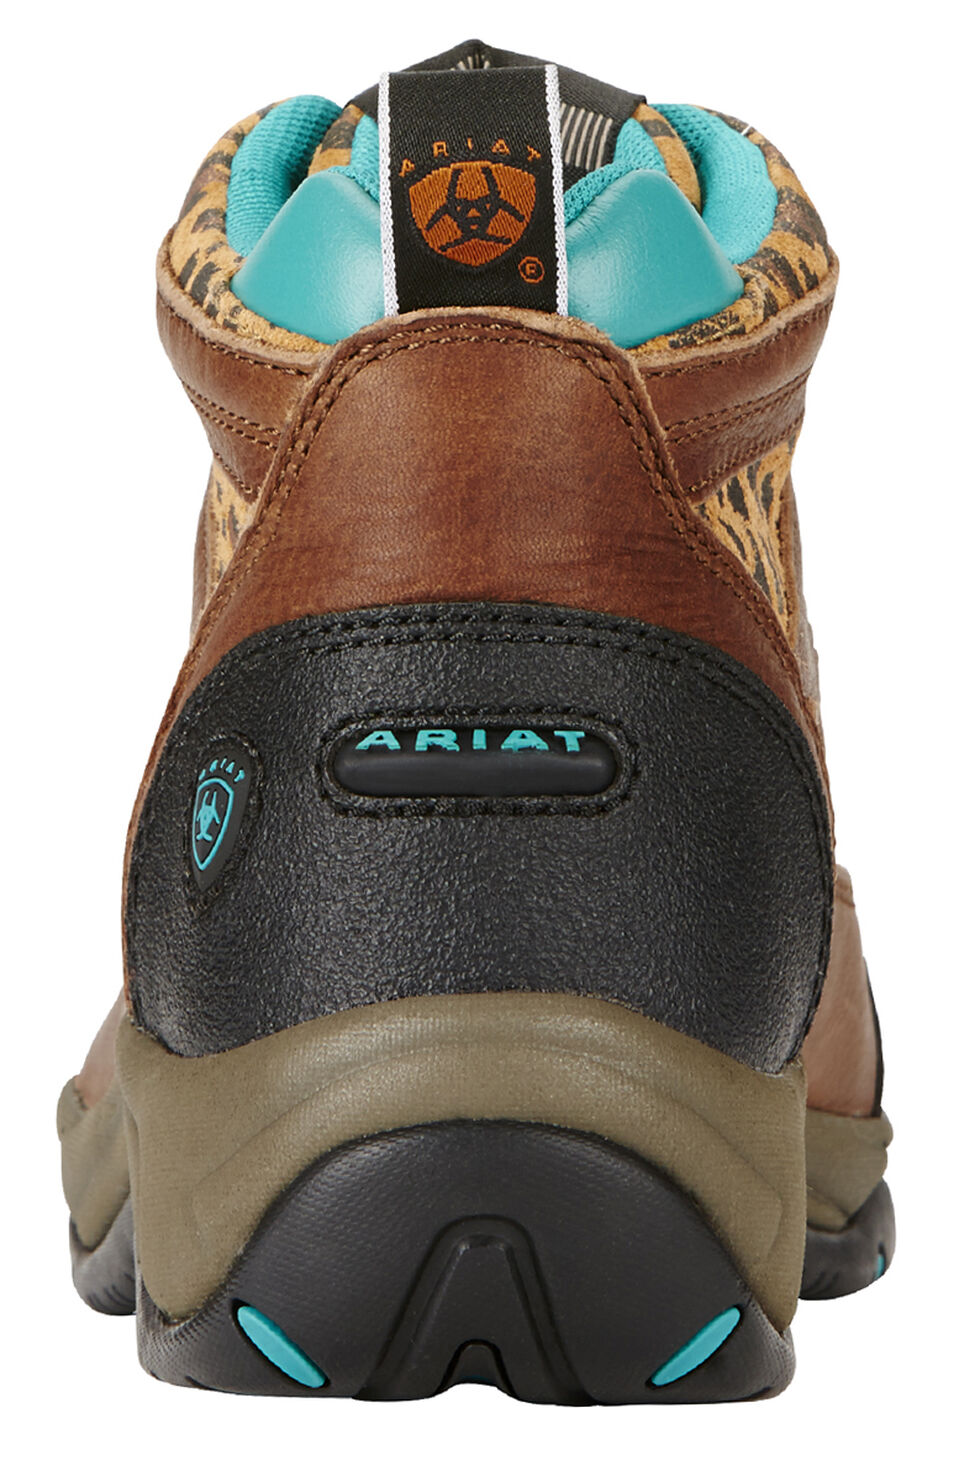 Ariat Women's Tundra Cheetah Terrain Boots - Round Toe, Brown, hi-res